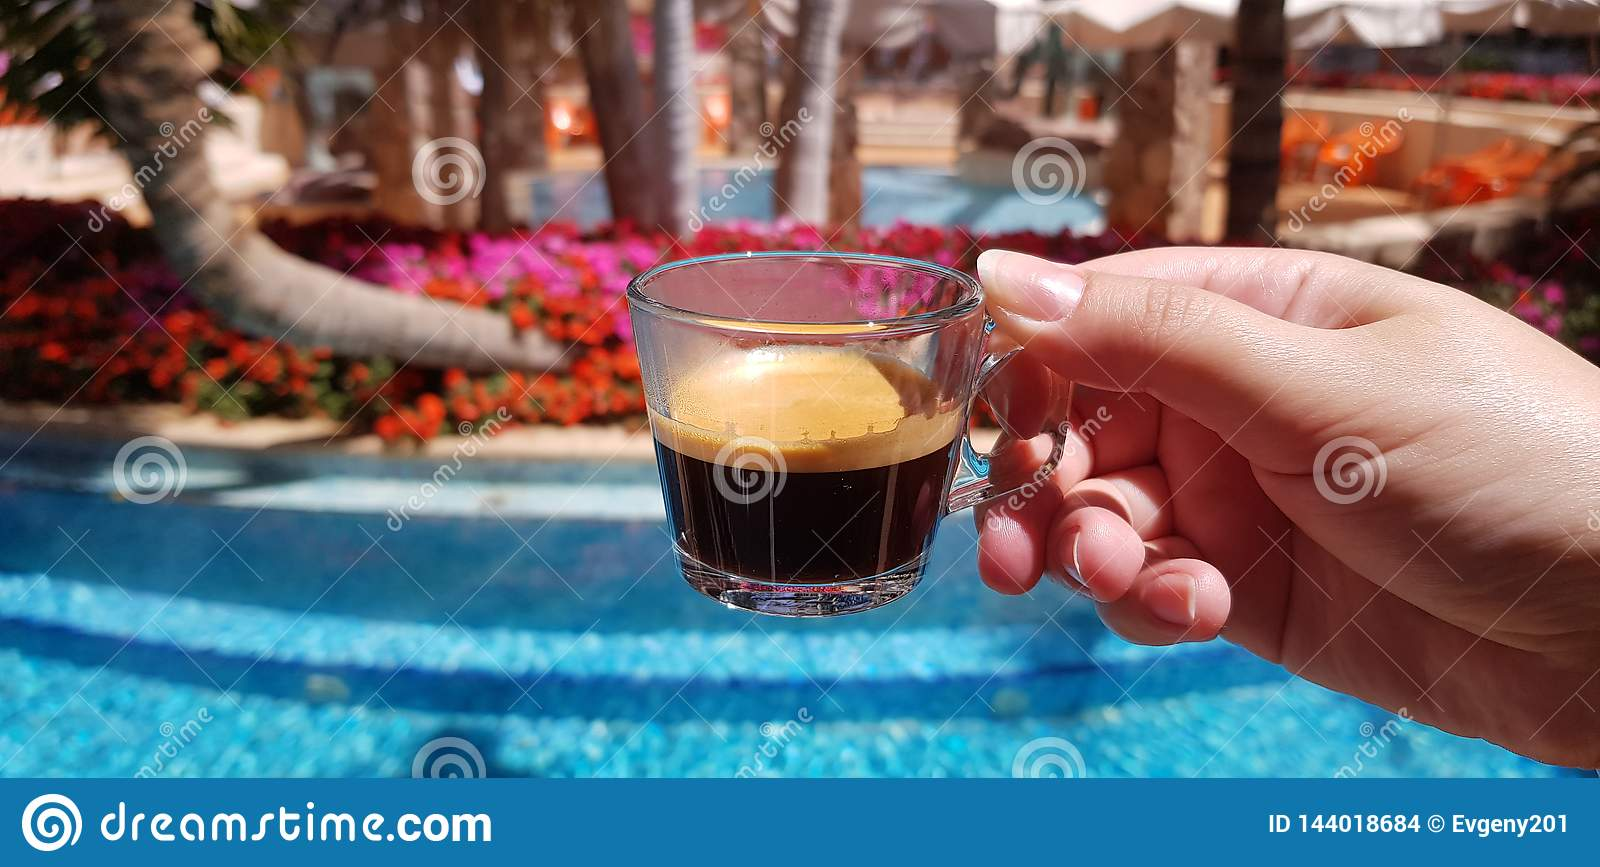 Coffee cup made from transparent glass in female hand against blue outdoor pool